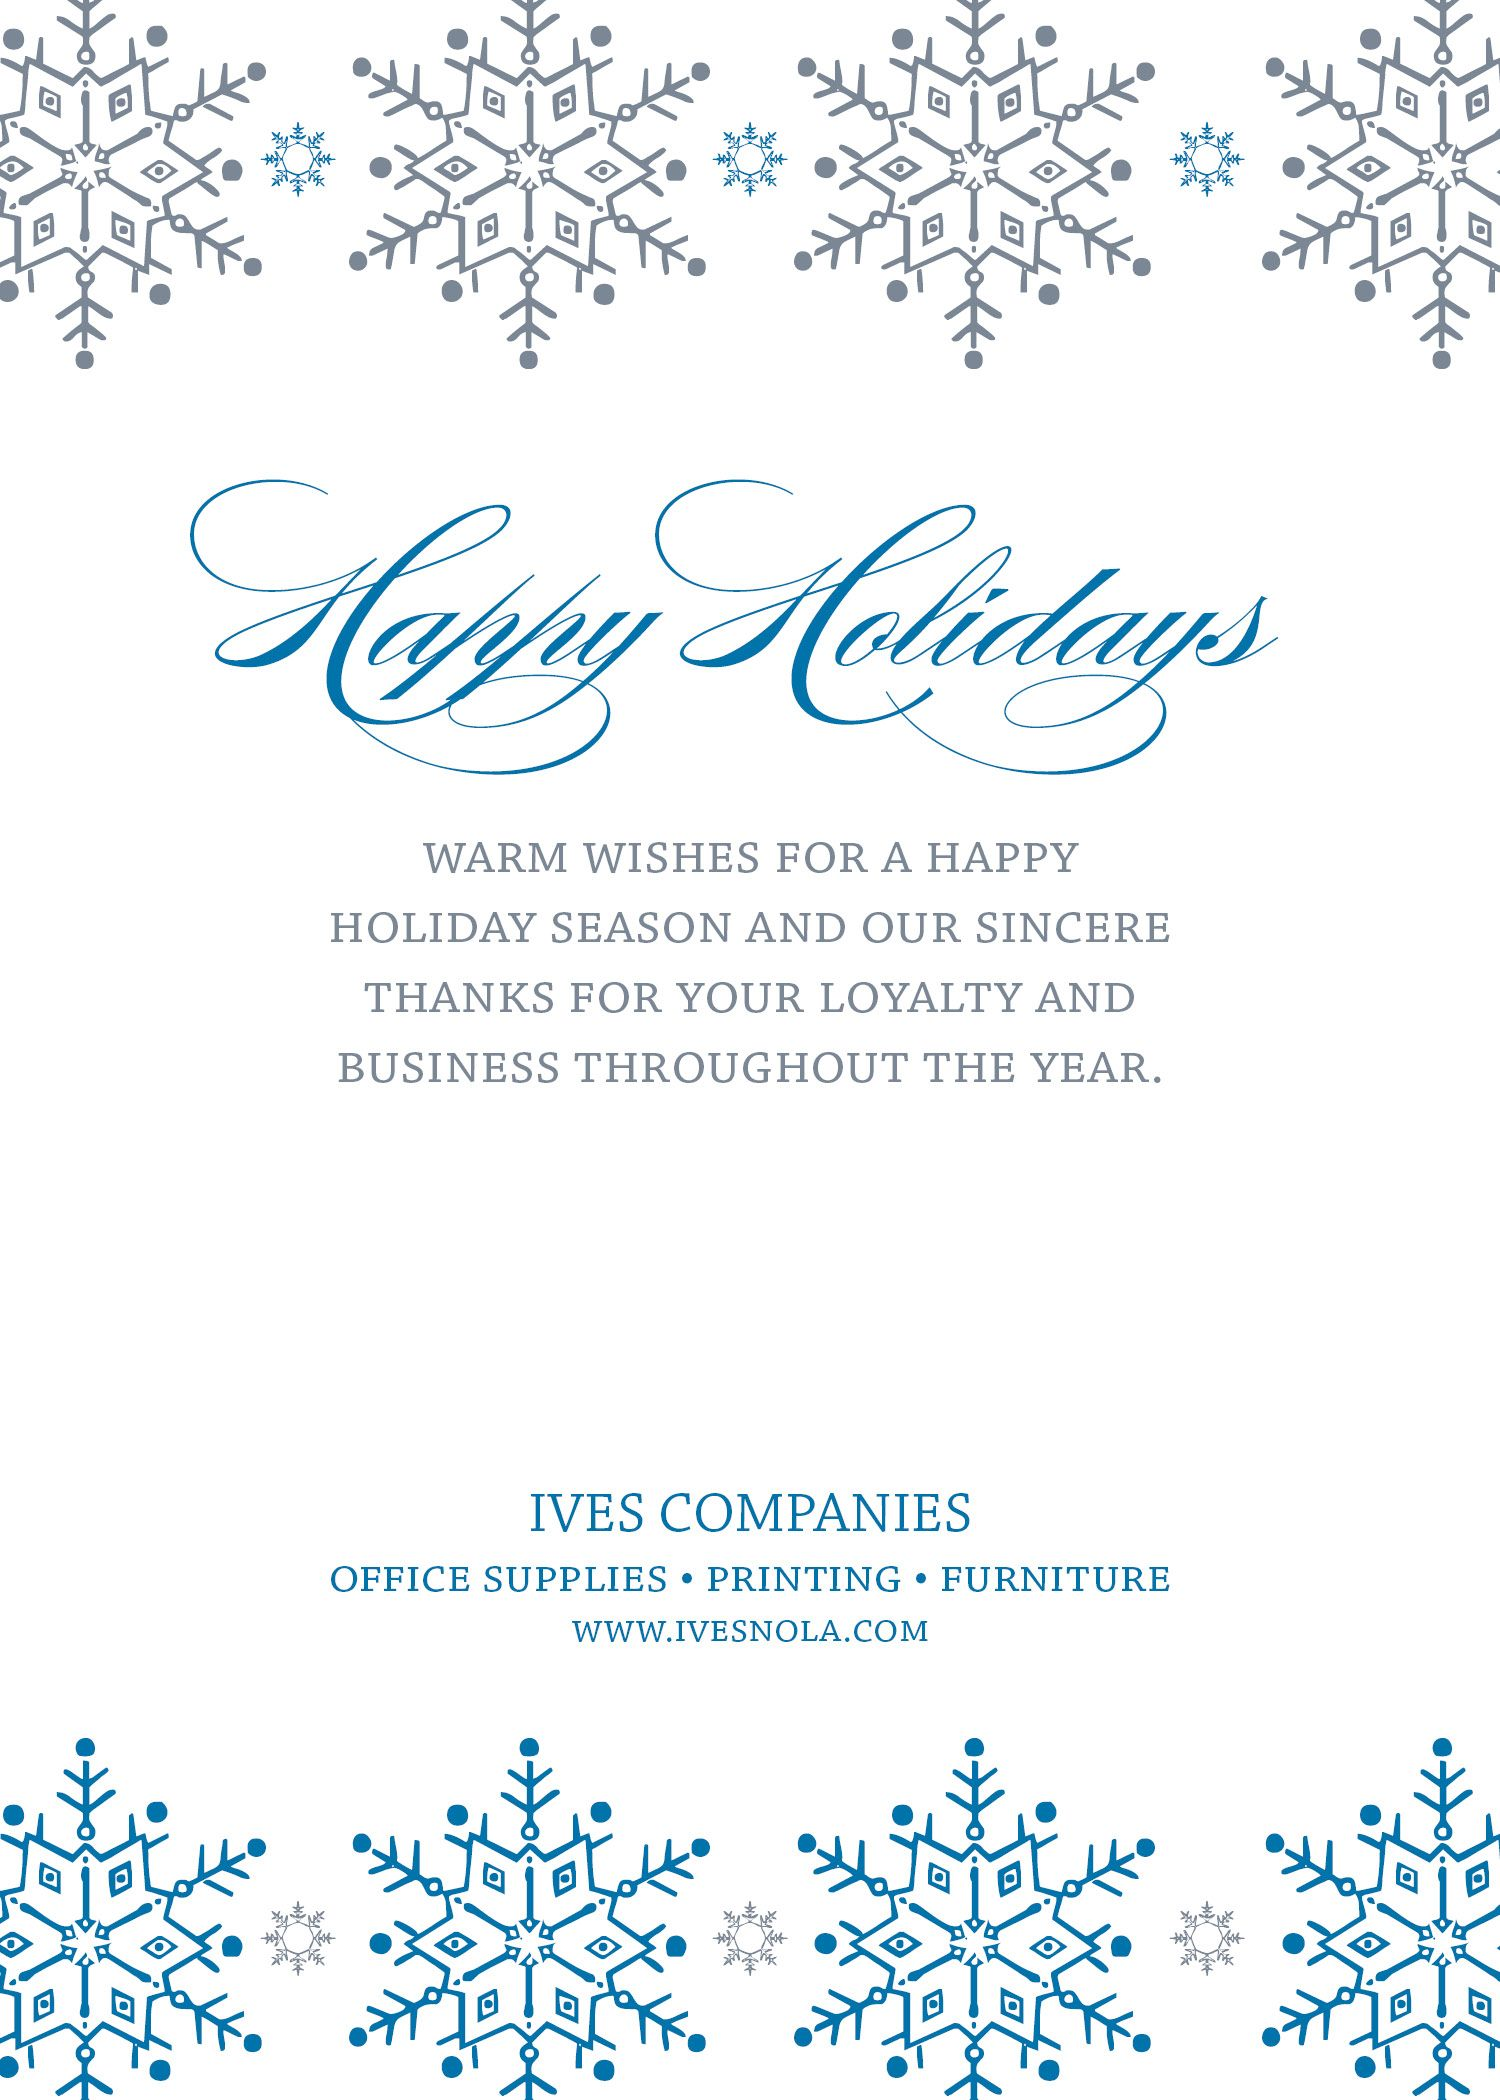 Corporate Holiday Card Design by IVES Office Supply, Printing ...